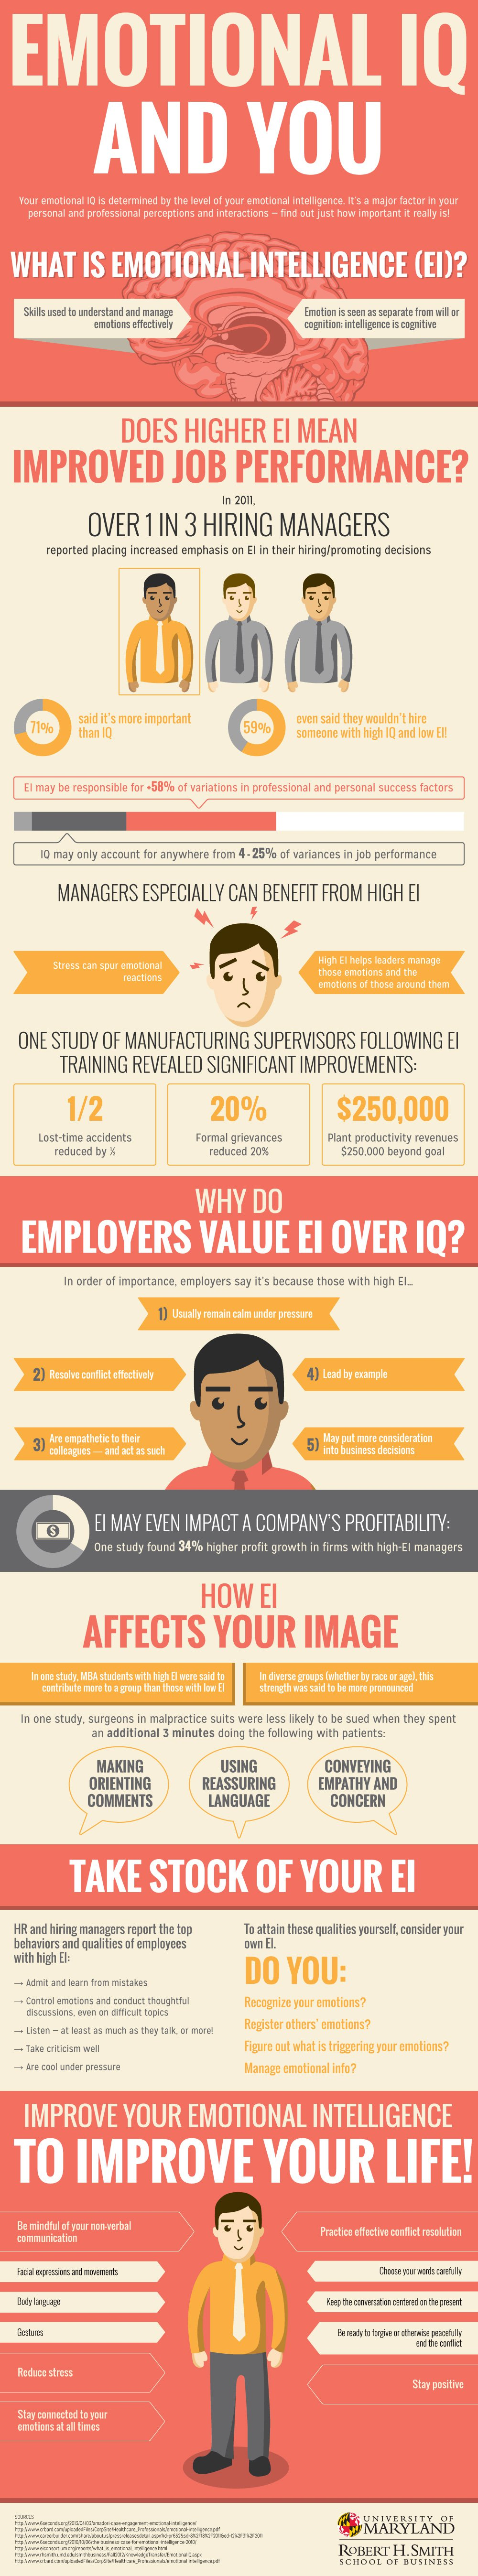 Emotional Intelligence For Your Career